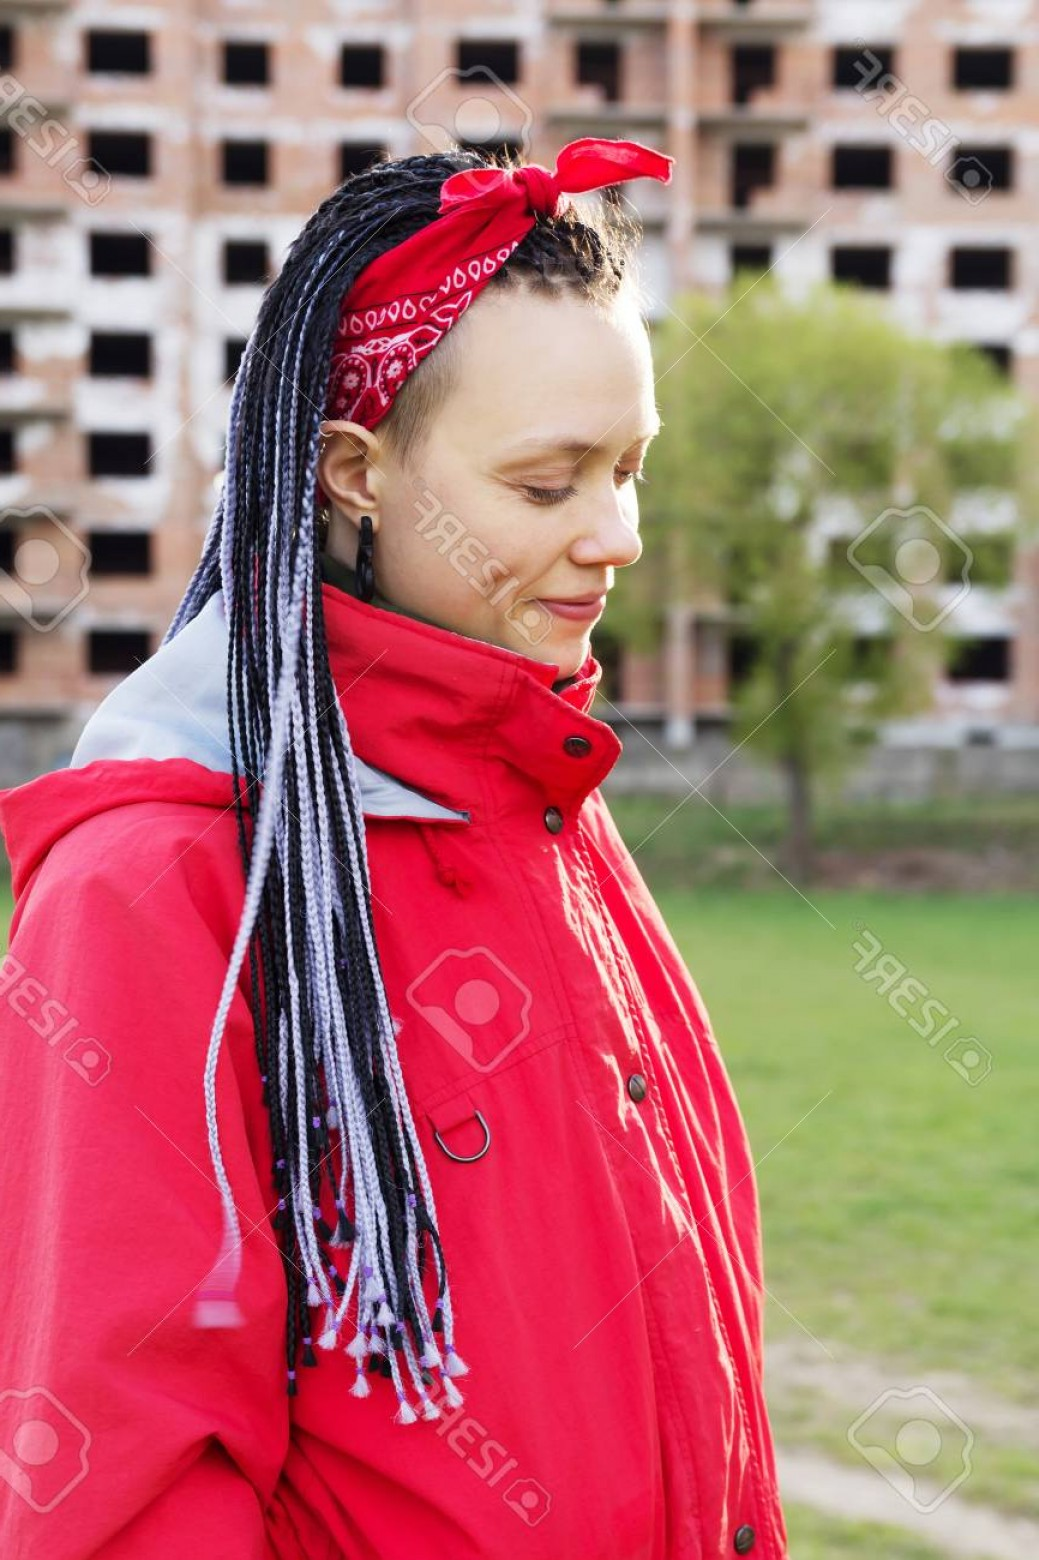 Extencion Braids Vector: Photowomen Hairstyle With Hair Extensions Braided In Thin Plaits And Afrobraids